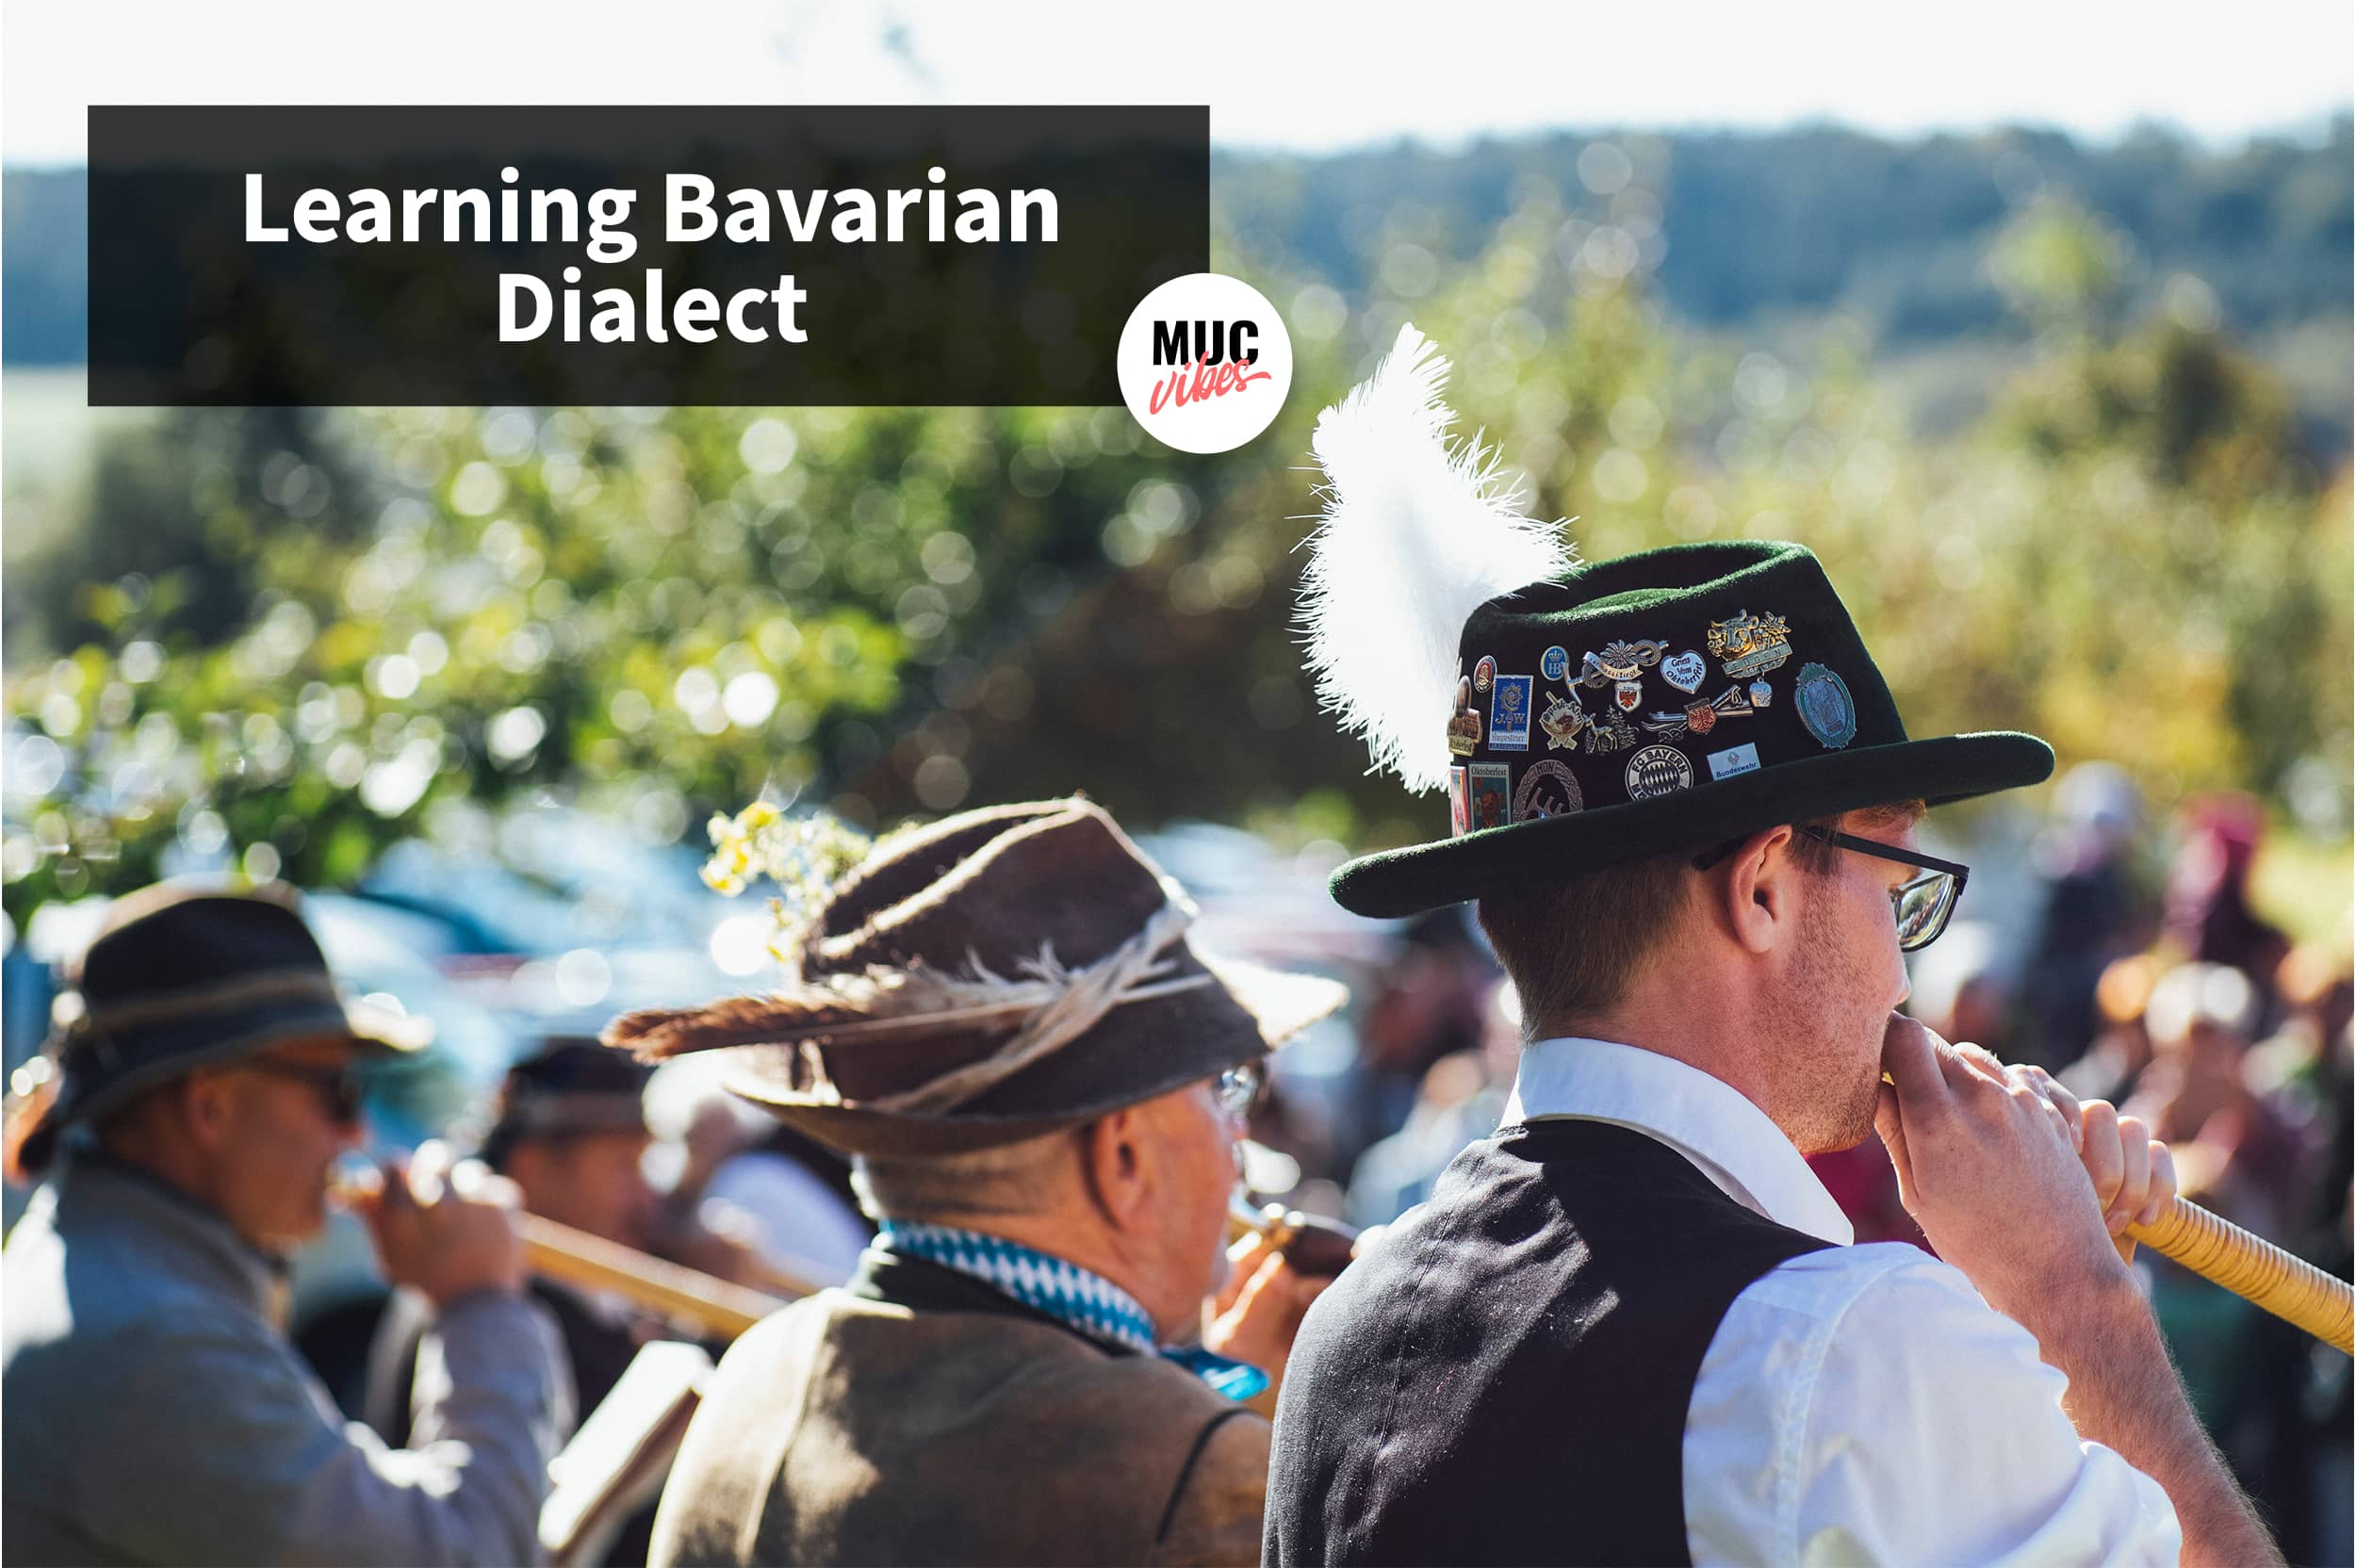 Learning Bavarian dialect